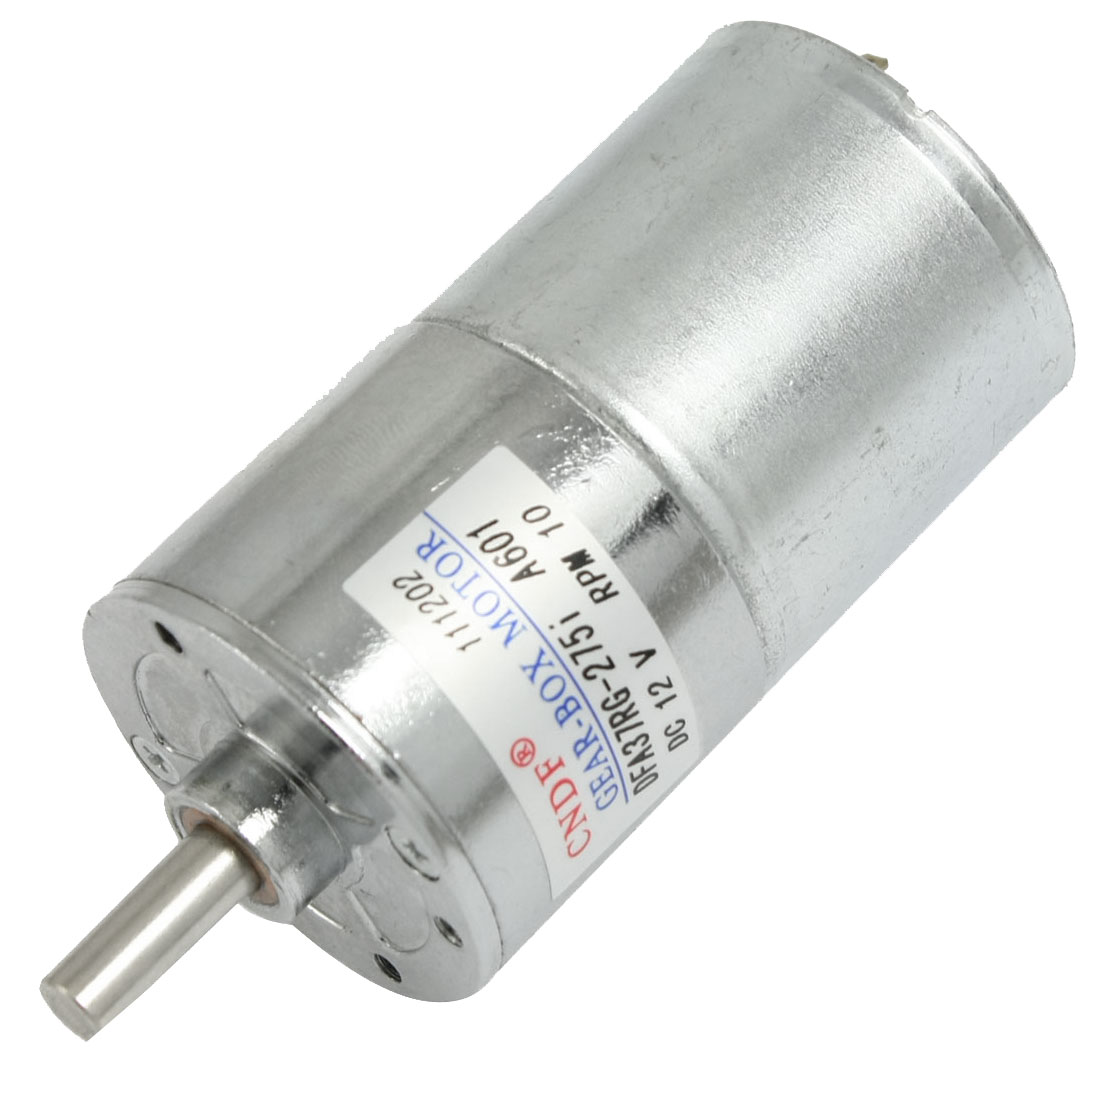 DC 12V 130mA 10RPM 15Kg-cm High Torque Permanent Magnetic DC Gear Motor